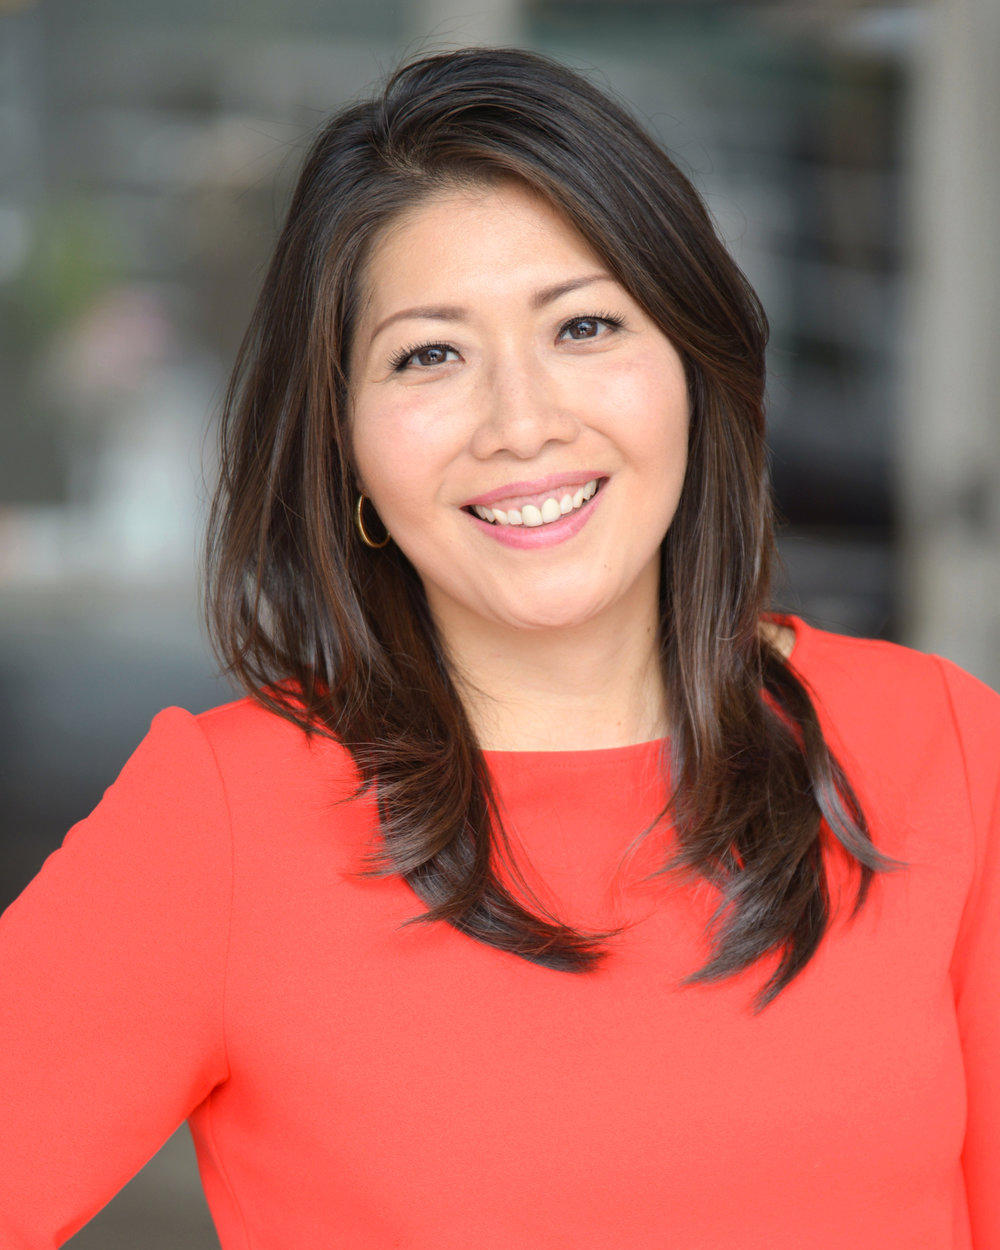 Susan Oh   Susan Sim Oh is co-owner of WKTB-CD, a local Class A television station in the Atlanta DMA broadcasting top-tier Spanish and Korean broadcast networks, serving the area's fastest growing minority groups. Oh is also Managing Partner for Telemundo Atlanta, a premier Spanish-language television station. Oh has garnered the coveted Overall Station Excellence Emmy ®  Award for 2013, 2014, 2016, and 2017. Oh received her Executive MBA from Georgia State University and her Bachelors of Science in Broadcast Journalism from the University of Illinois - Urbana Champaign. Oh is married with two children and resides in Brookhaven.